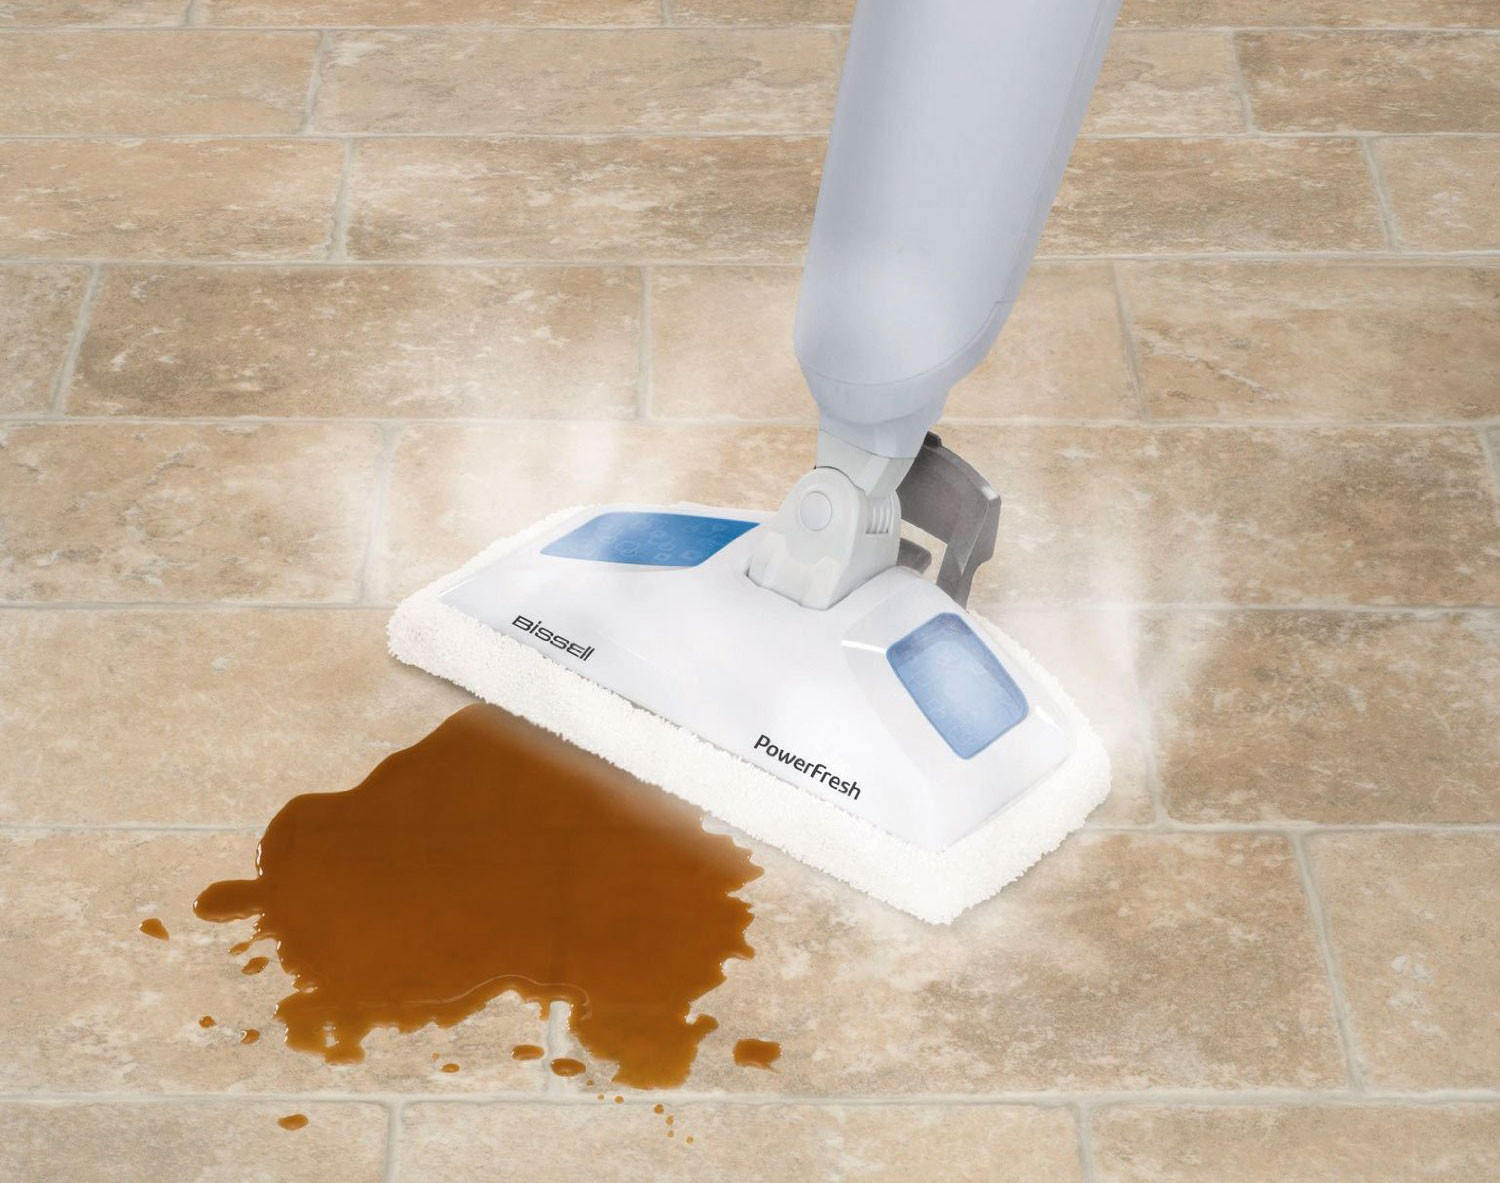 bissell hardwood floor steam cleaner of the 4 best steam mops throughout a3e8dac8 fd9f 4940 ad99 8094ad1403c3 811cn2sa0wl sl1500